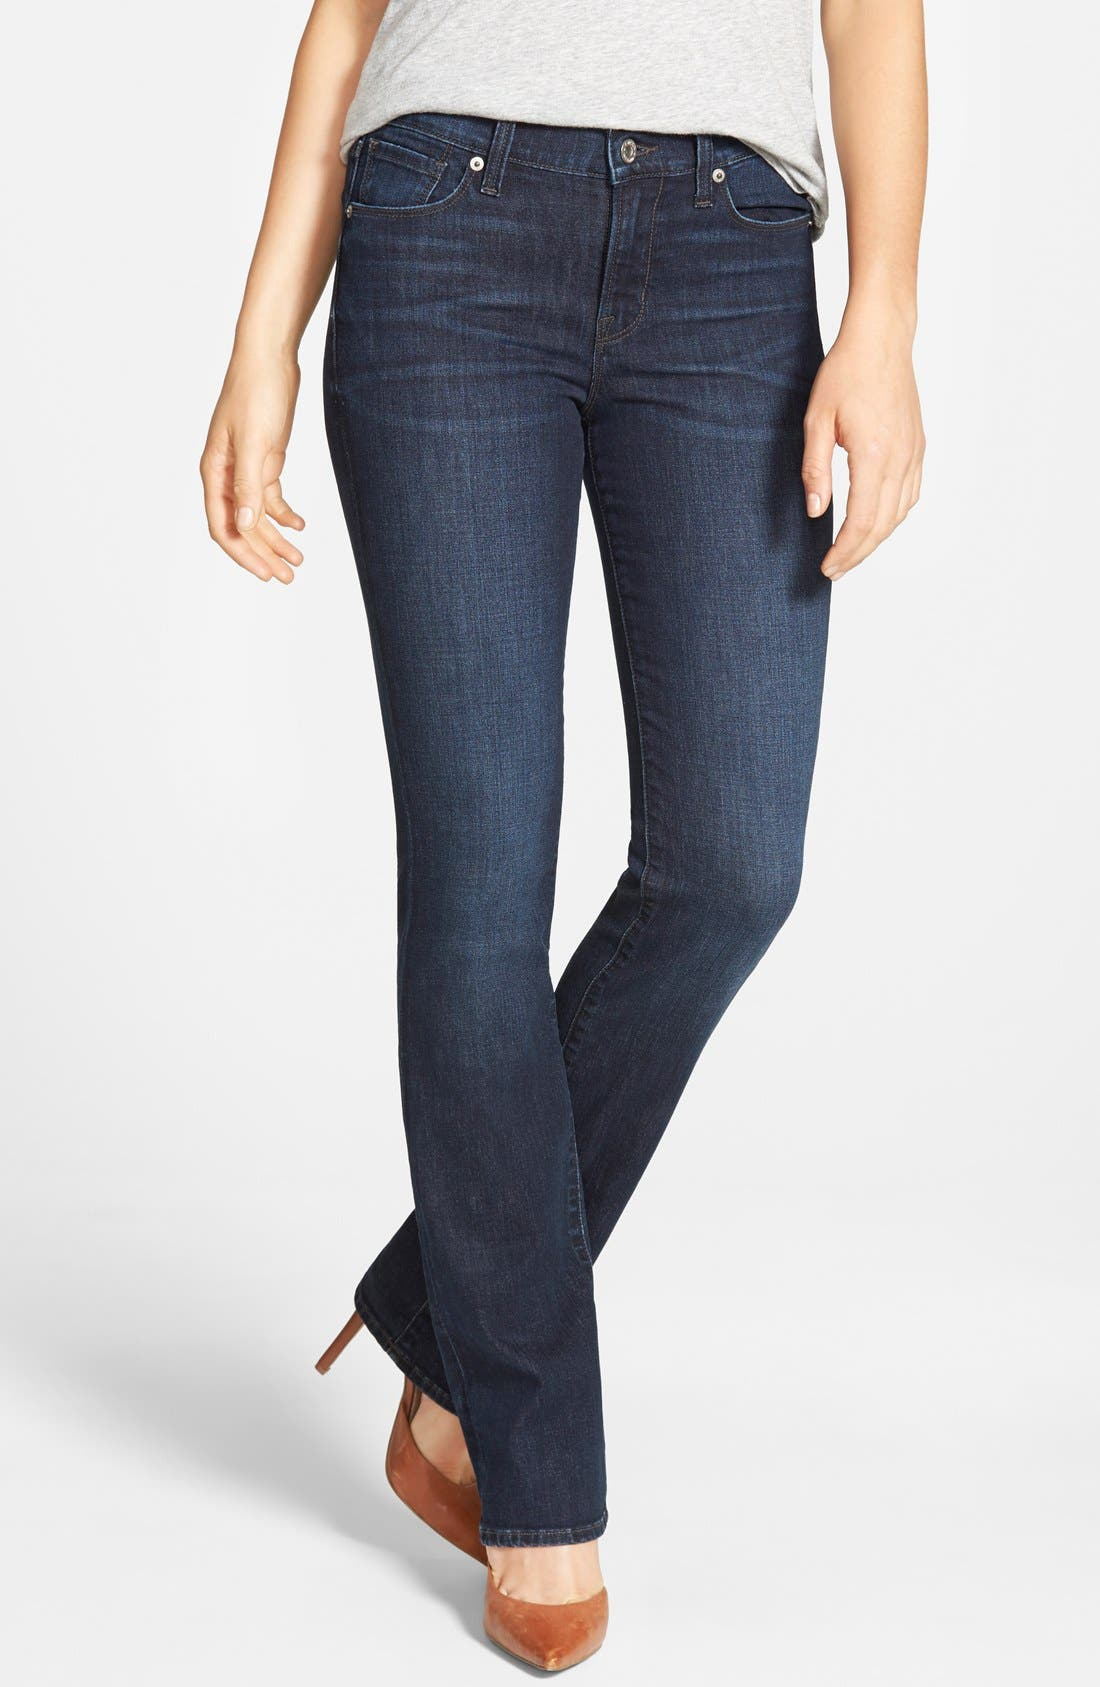 'Brooke' Stretch Bootcut Jeans,                             Main thumbnail 1, color,                             421